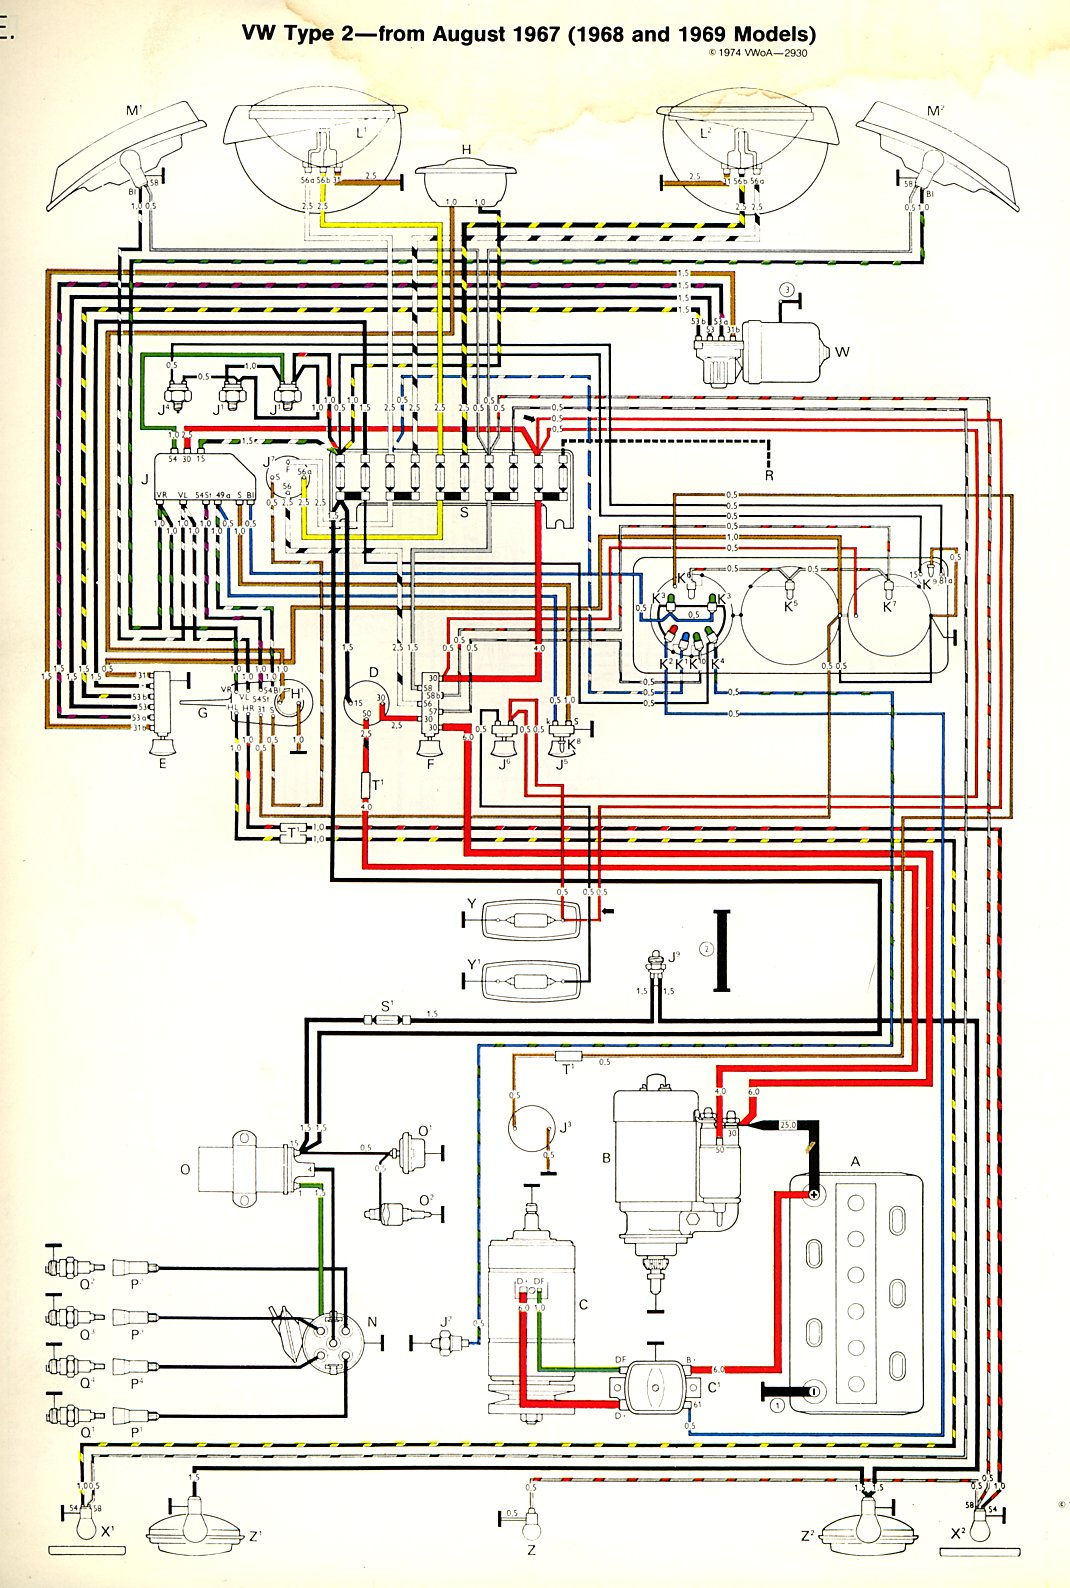 1979 vw wiring diagram - wiring diagram poised-usage-a -  poised-usage-a.agriturismoduemadonne.it  agriturismo due madonne